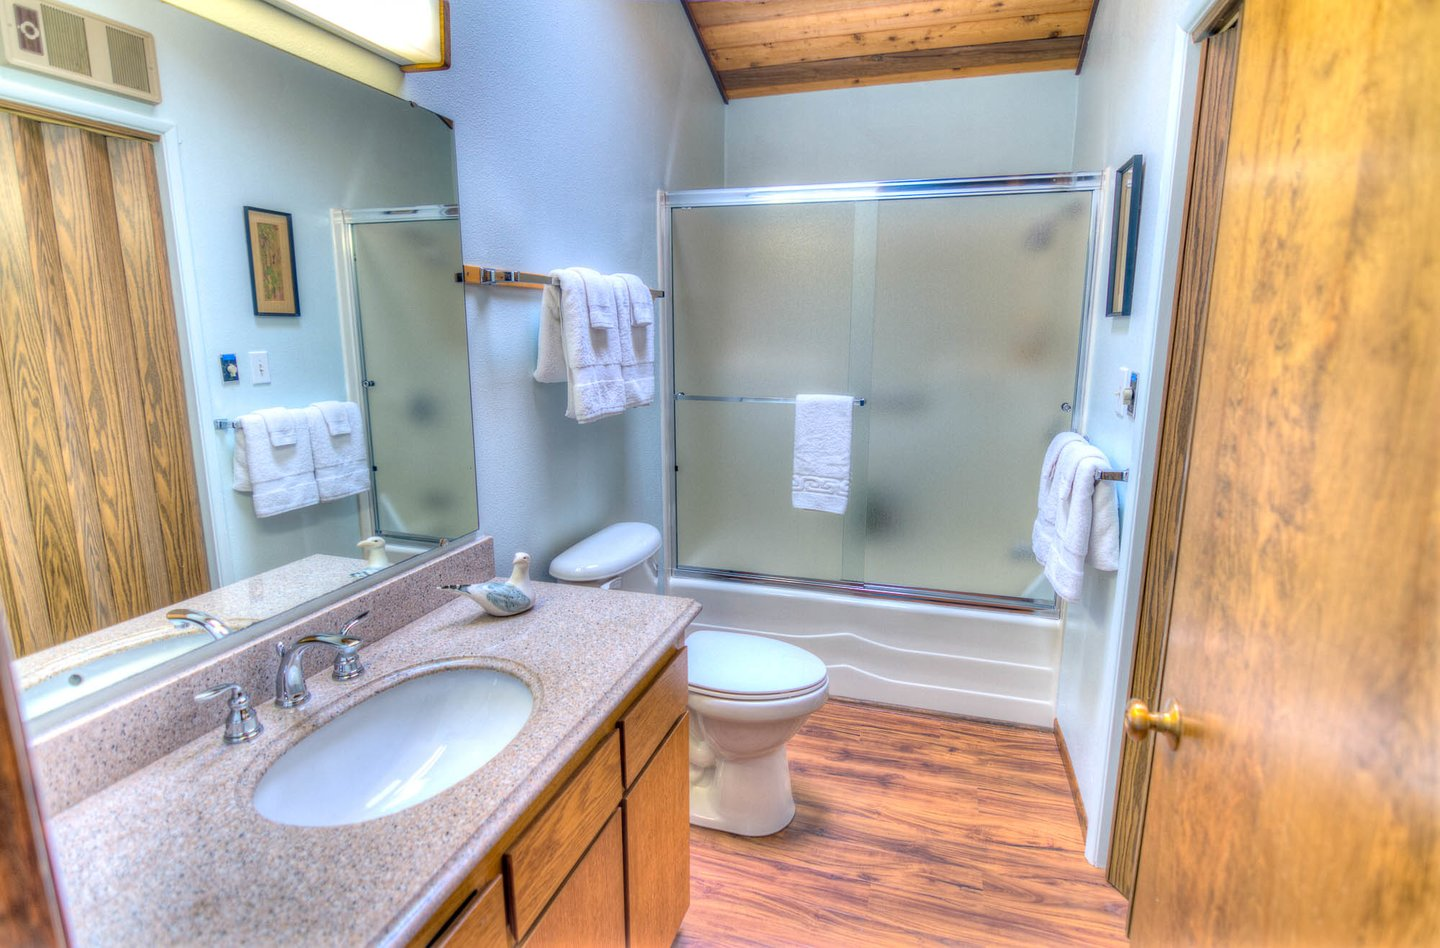 This shared bath in the hallway has plenty of room, including a washer and dryer!